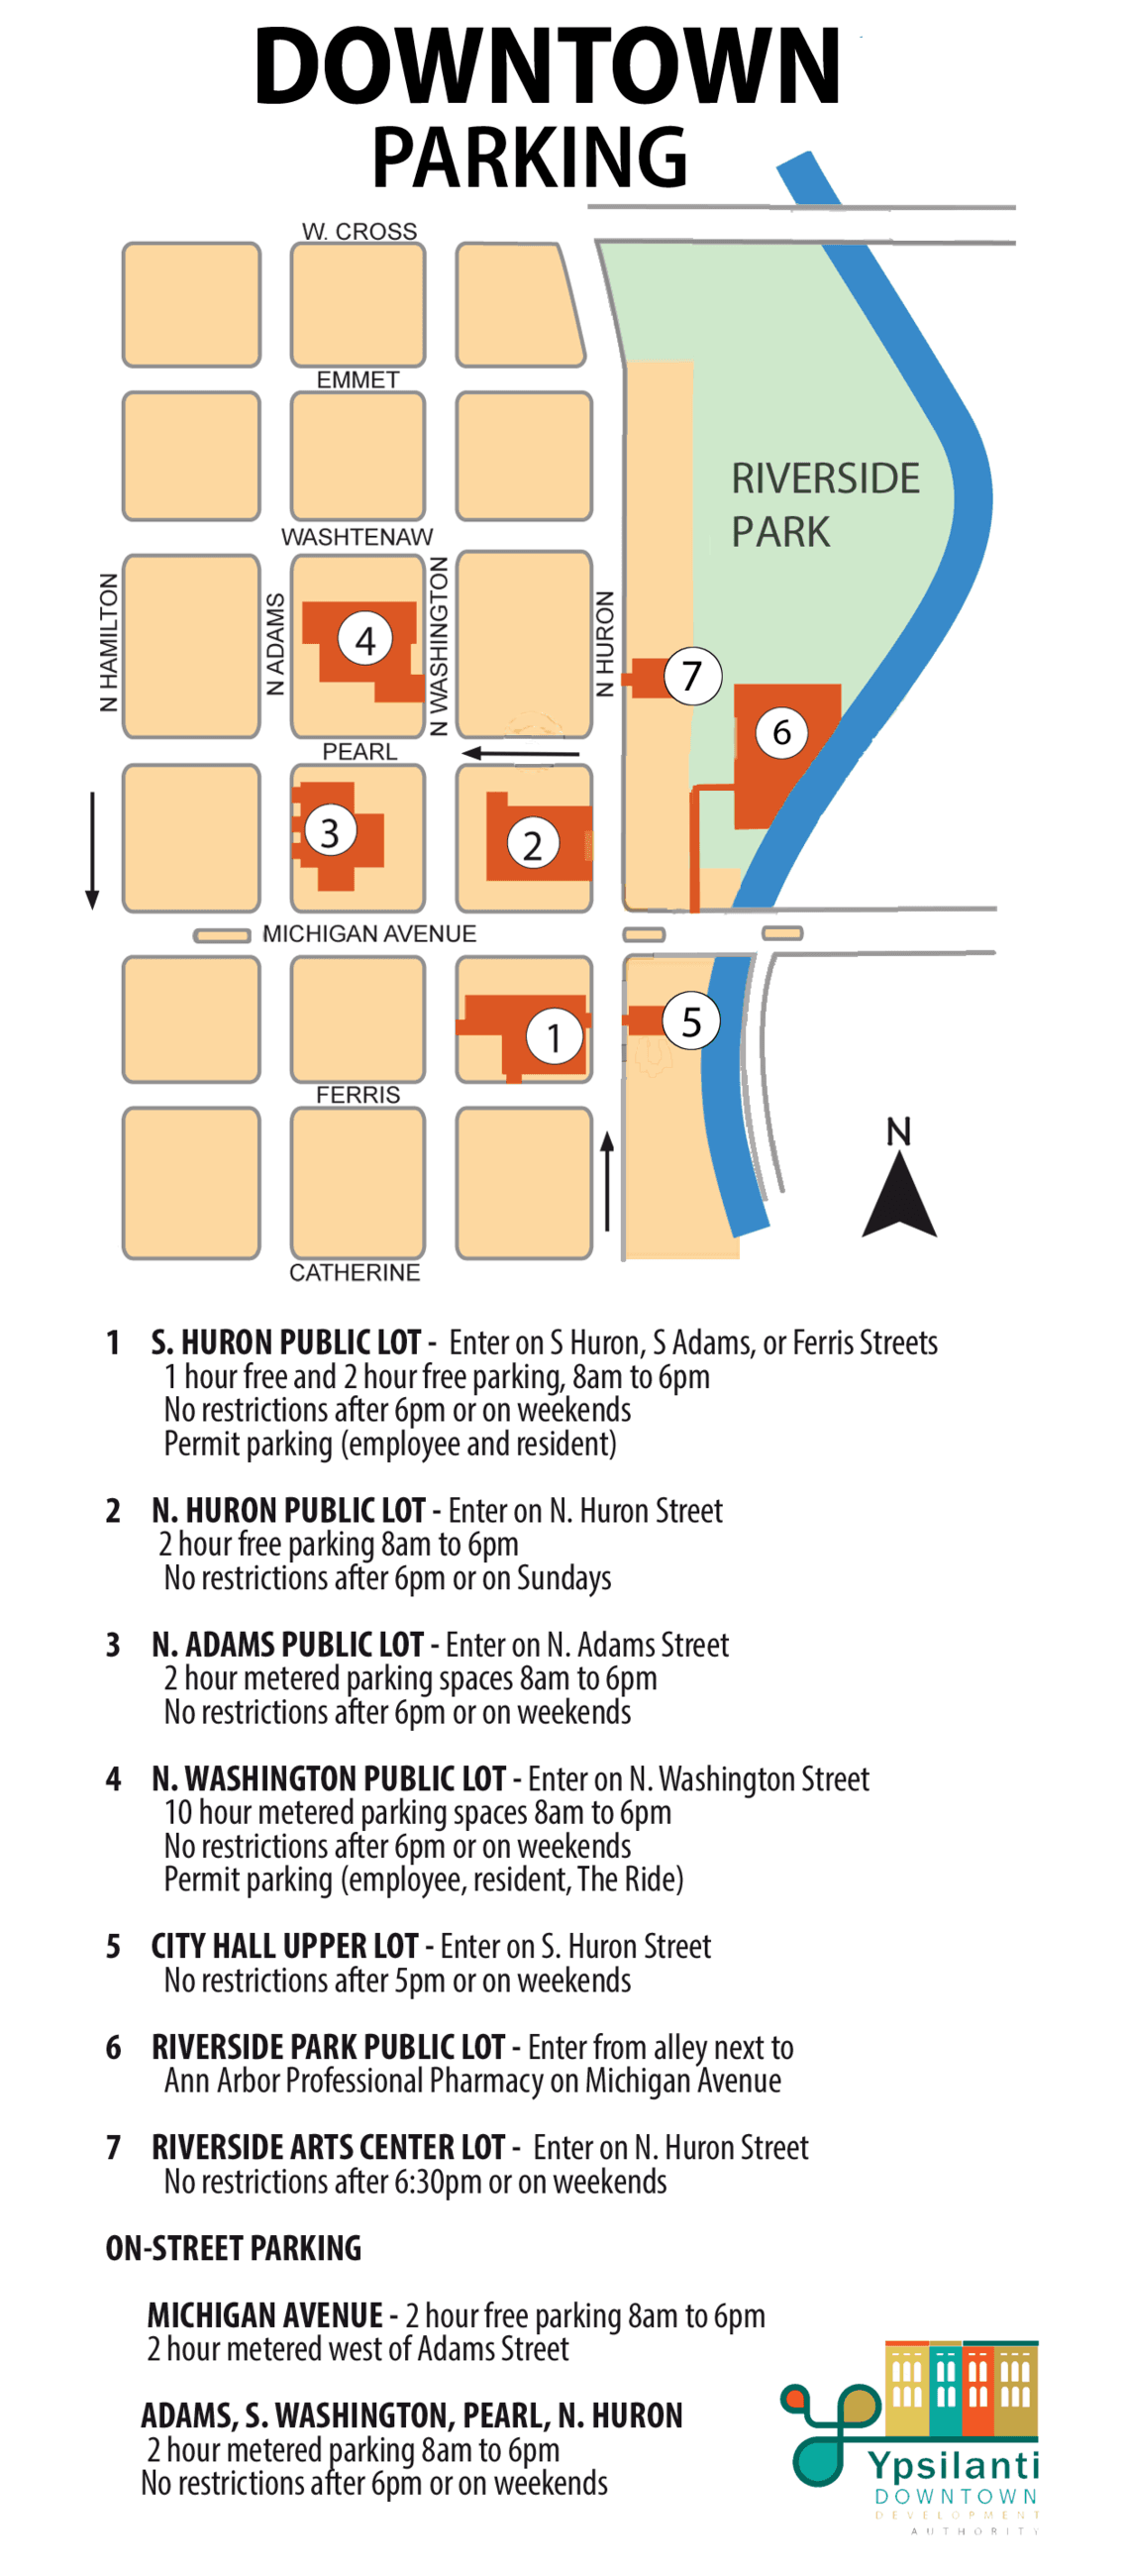 Map of on-street and off-street parking in the Downtown commercial district